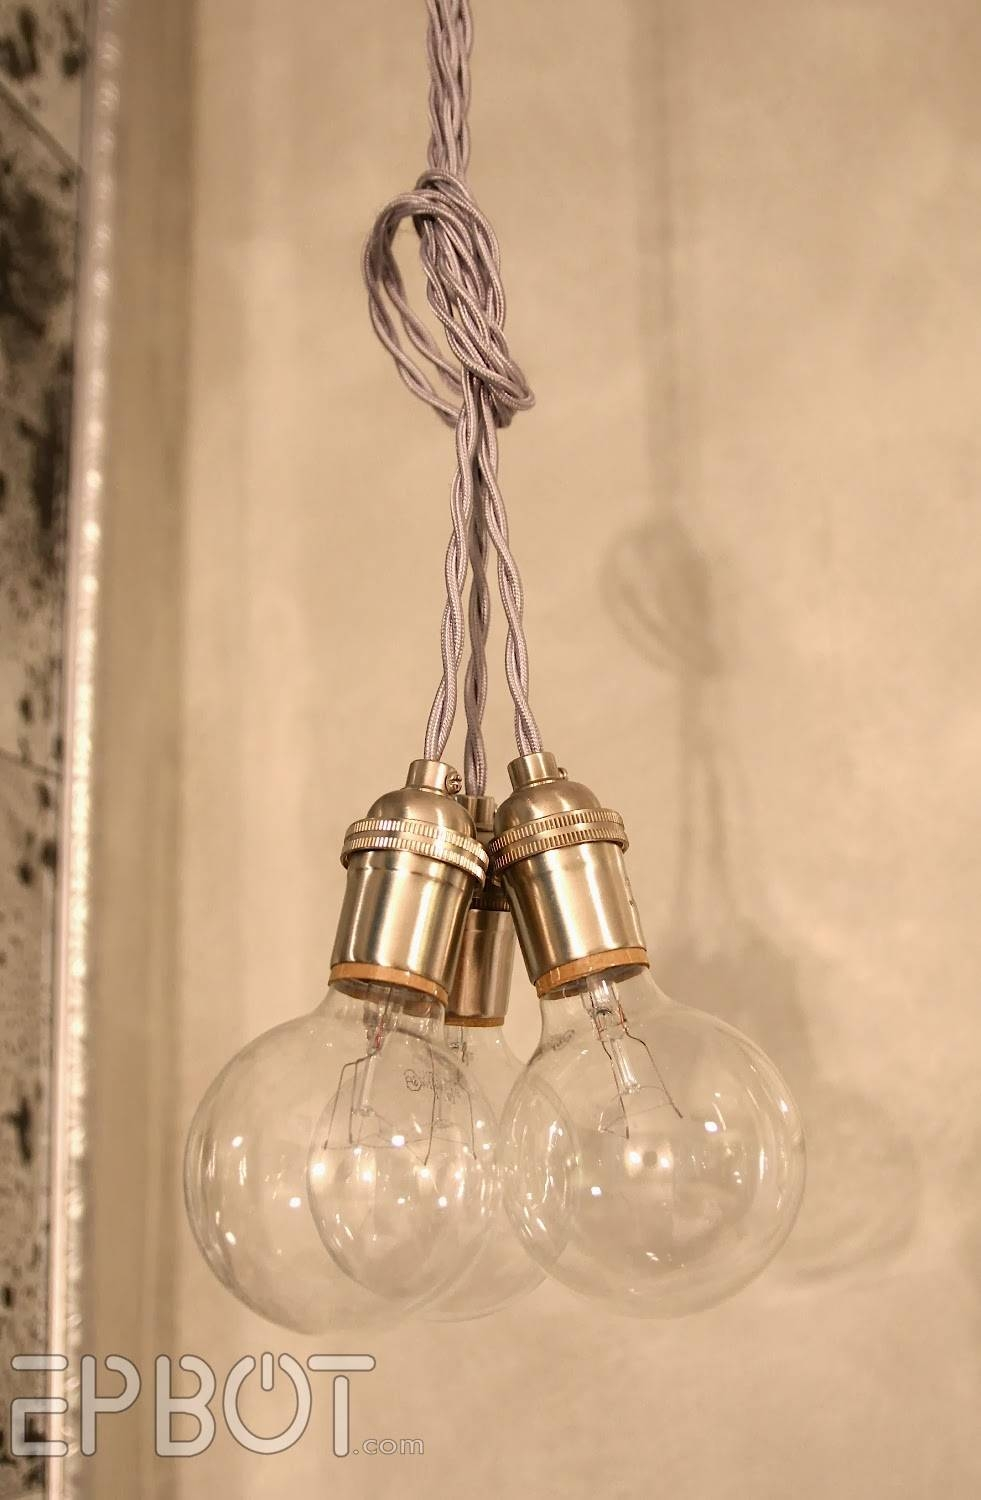 Epbot: Wire Your Own Pendant Lighting – Cheap, Easy, & Fun! Regarding Corded Pendant Lights (View 4 of 15)